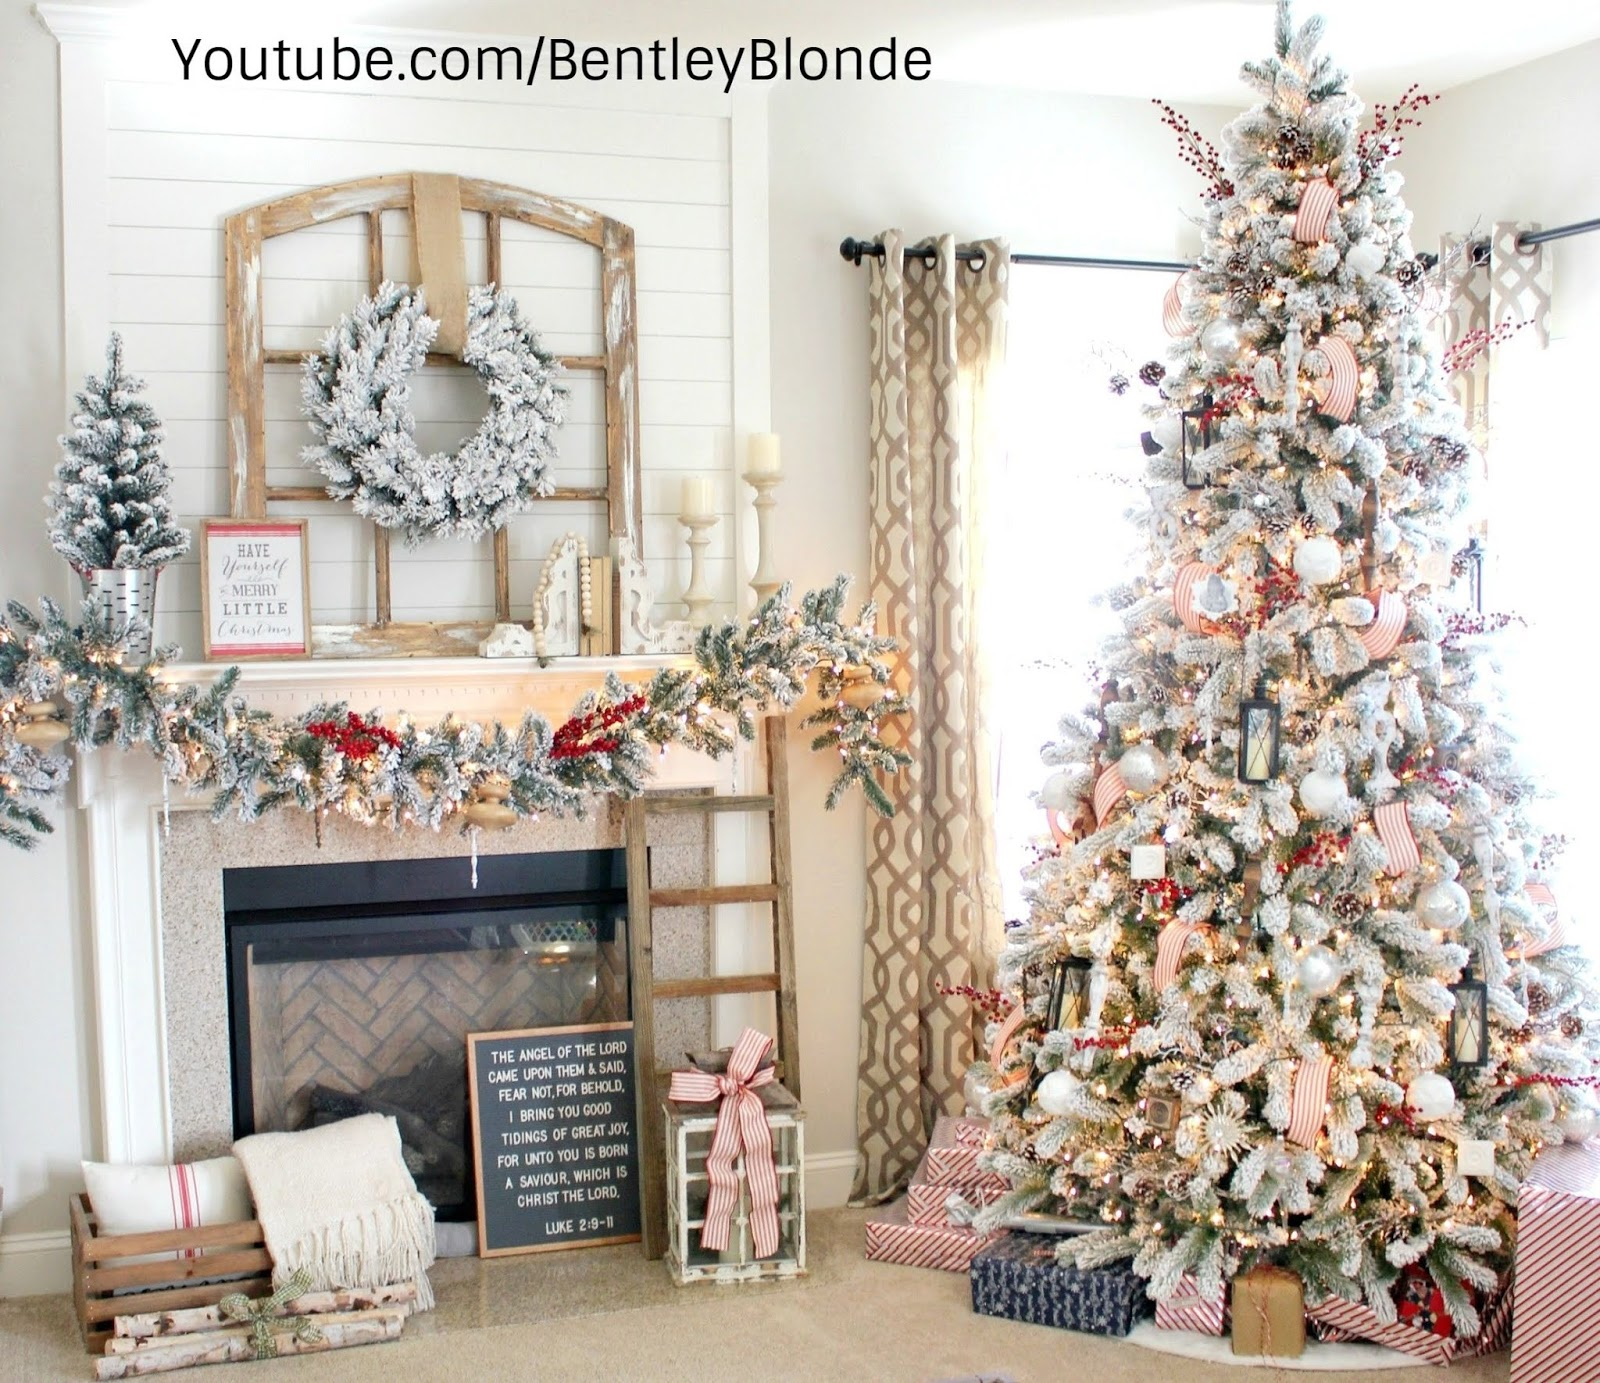 BentleyBlonde: Christmas 2018 Home Decor Trends | BentleyBlonde